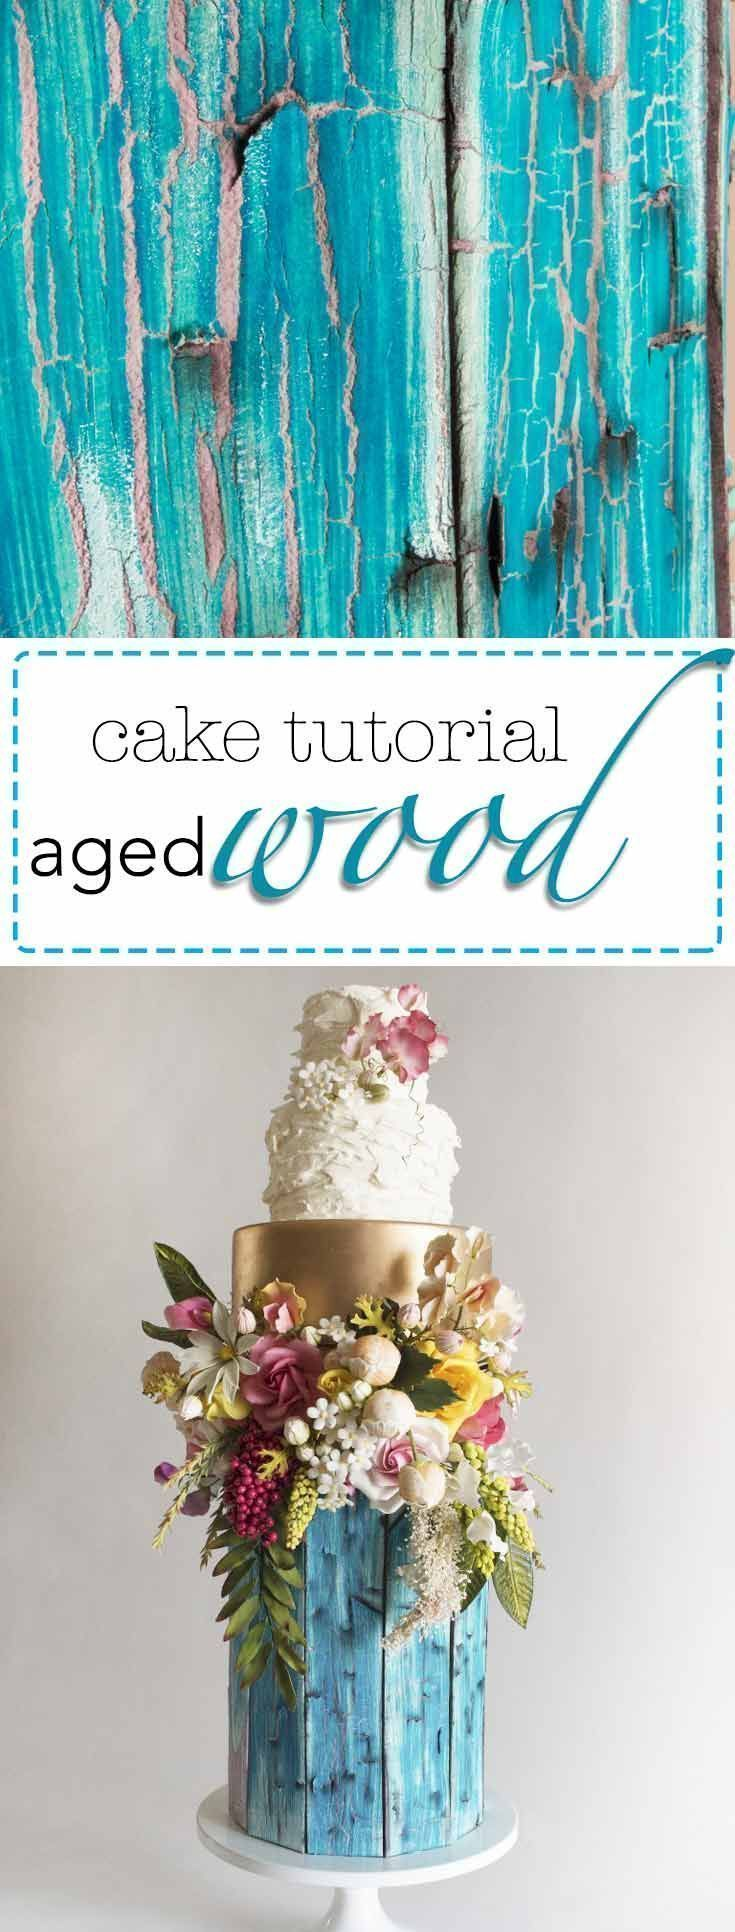 Aged painted wood effect for cakes wedding cake designs cake